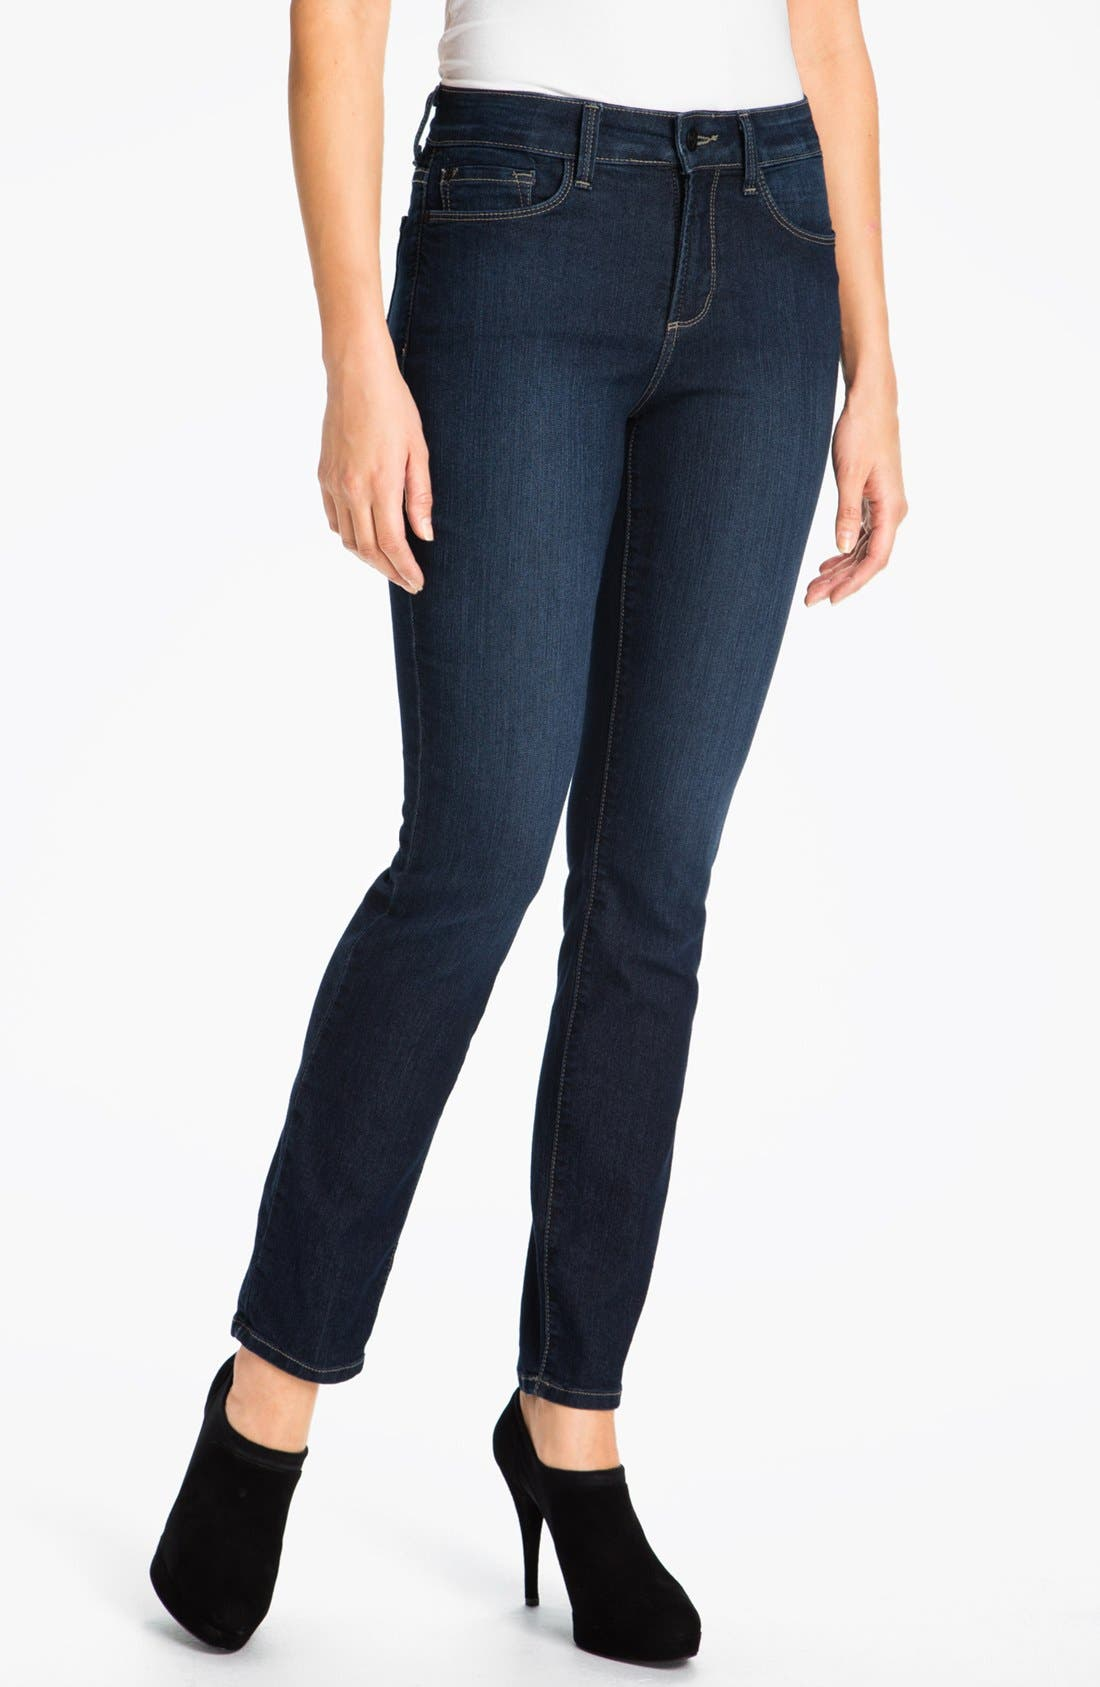 Main Image - NYDJ 'Alina' Stretch Skinny Jeans (Hollywood)